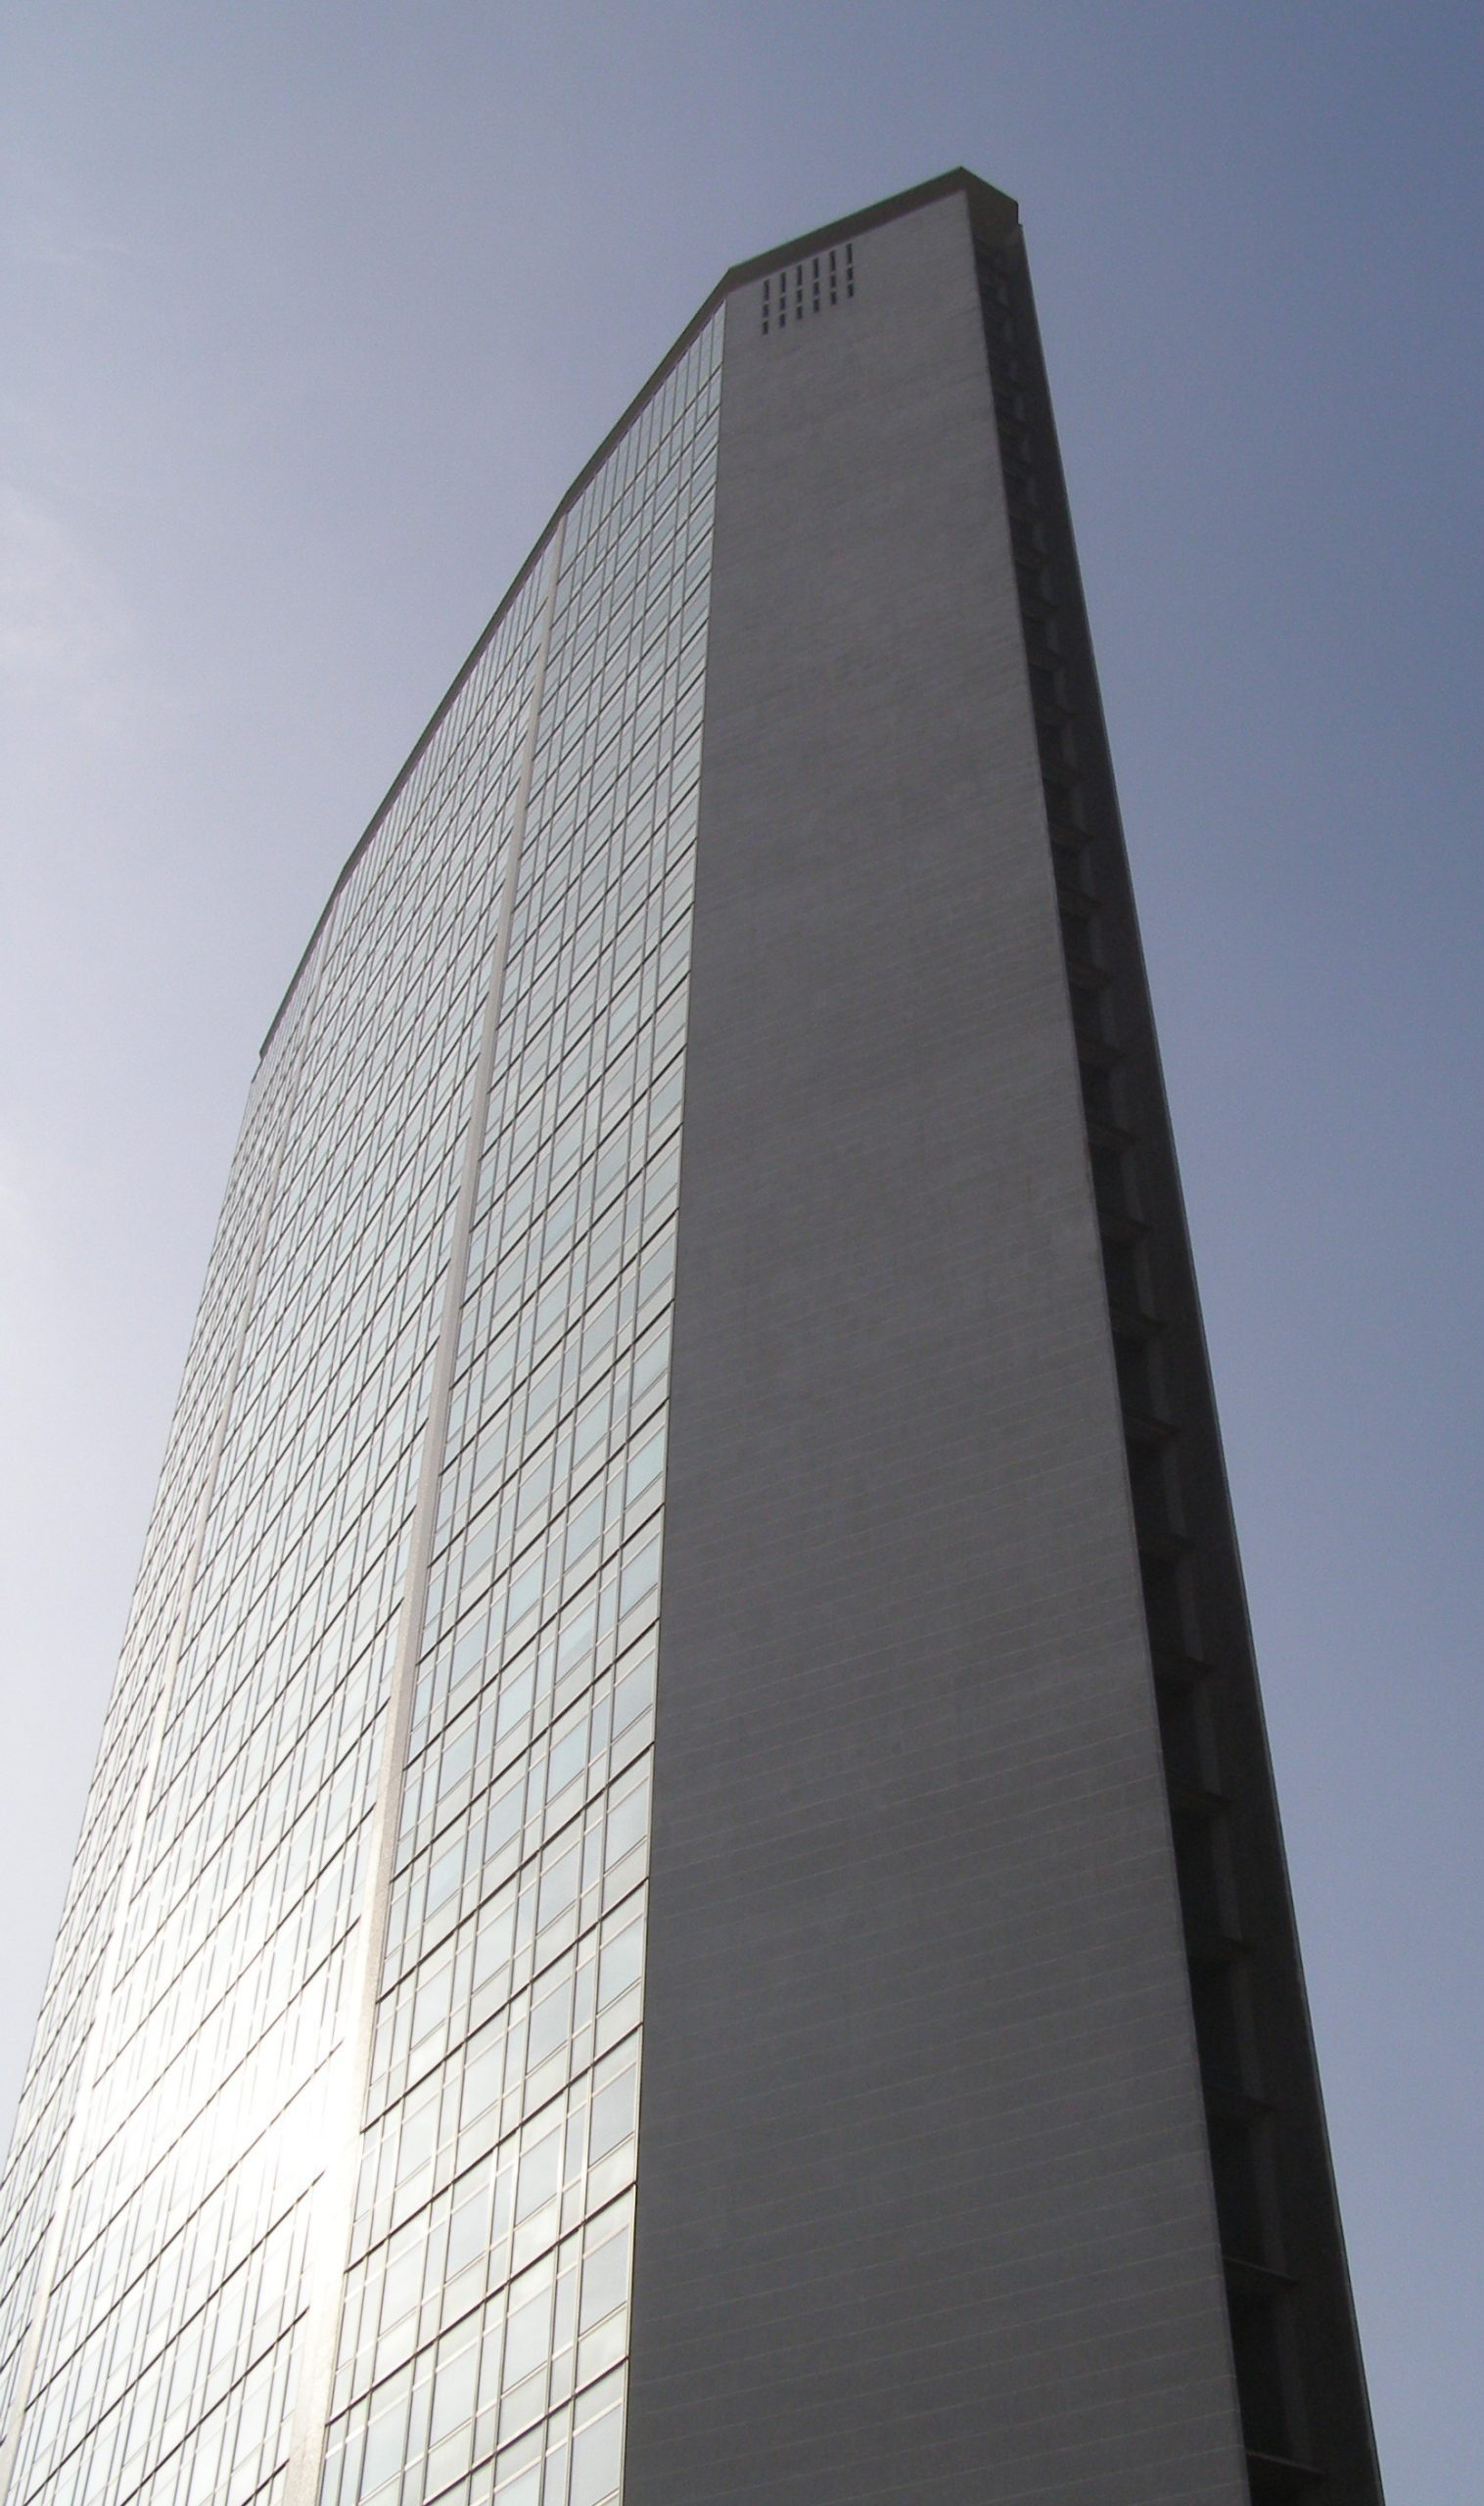 Pirelli Building in Milan viewed from the bottom